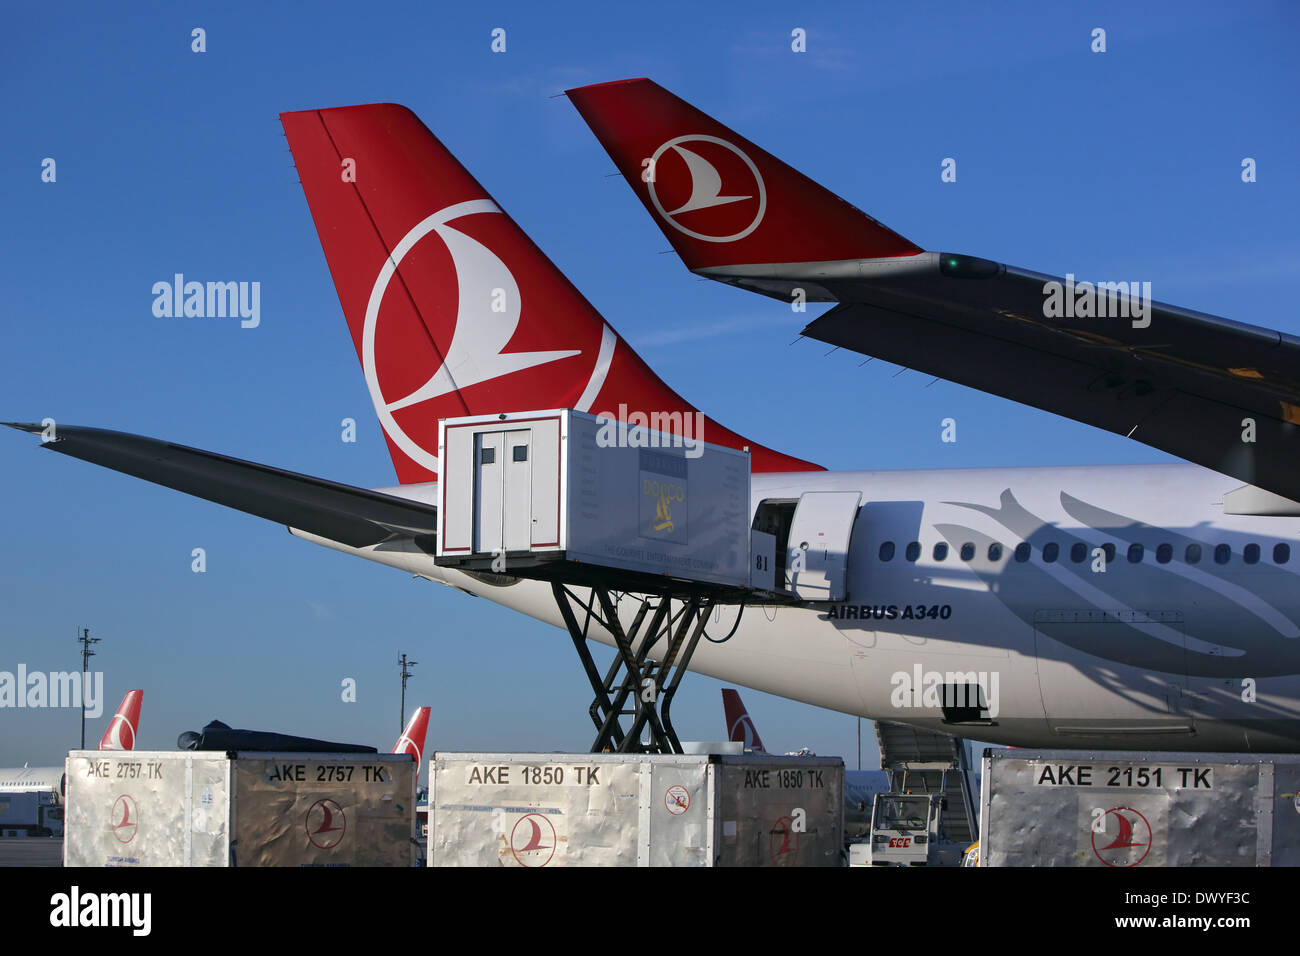 Airline Catering Stock Photos & Airline Catering Stock Images - Alamy